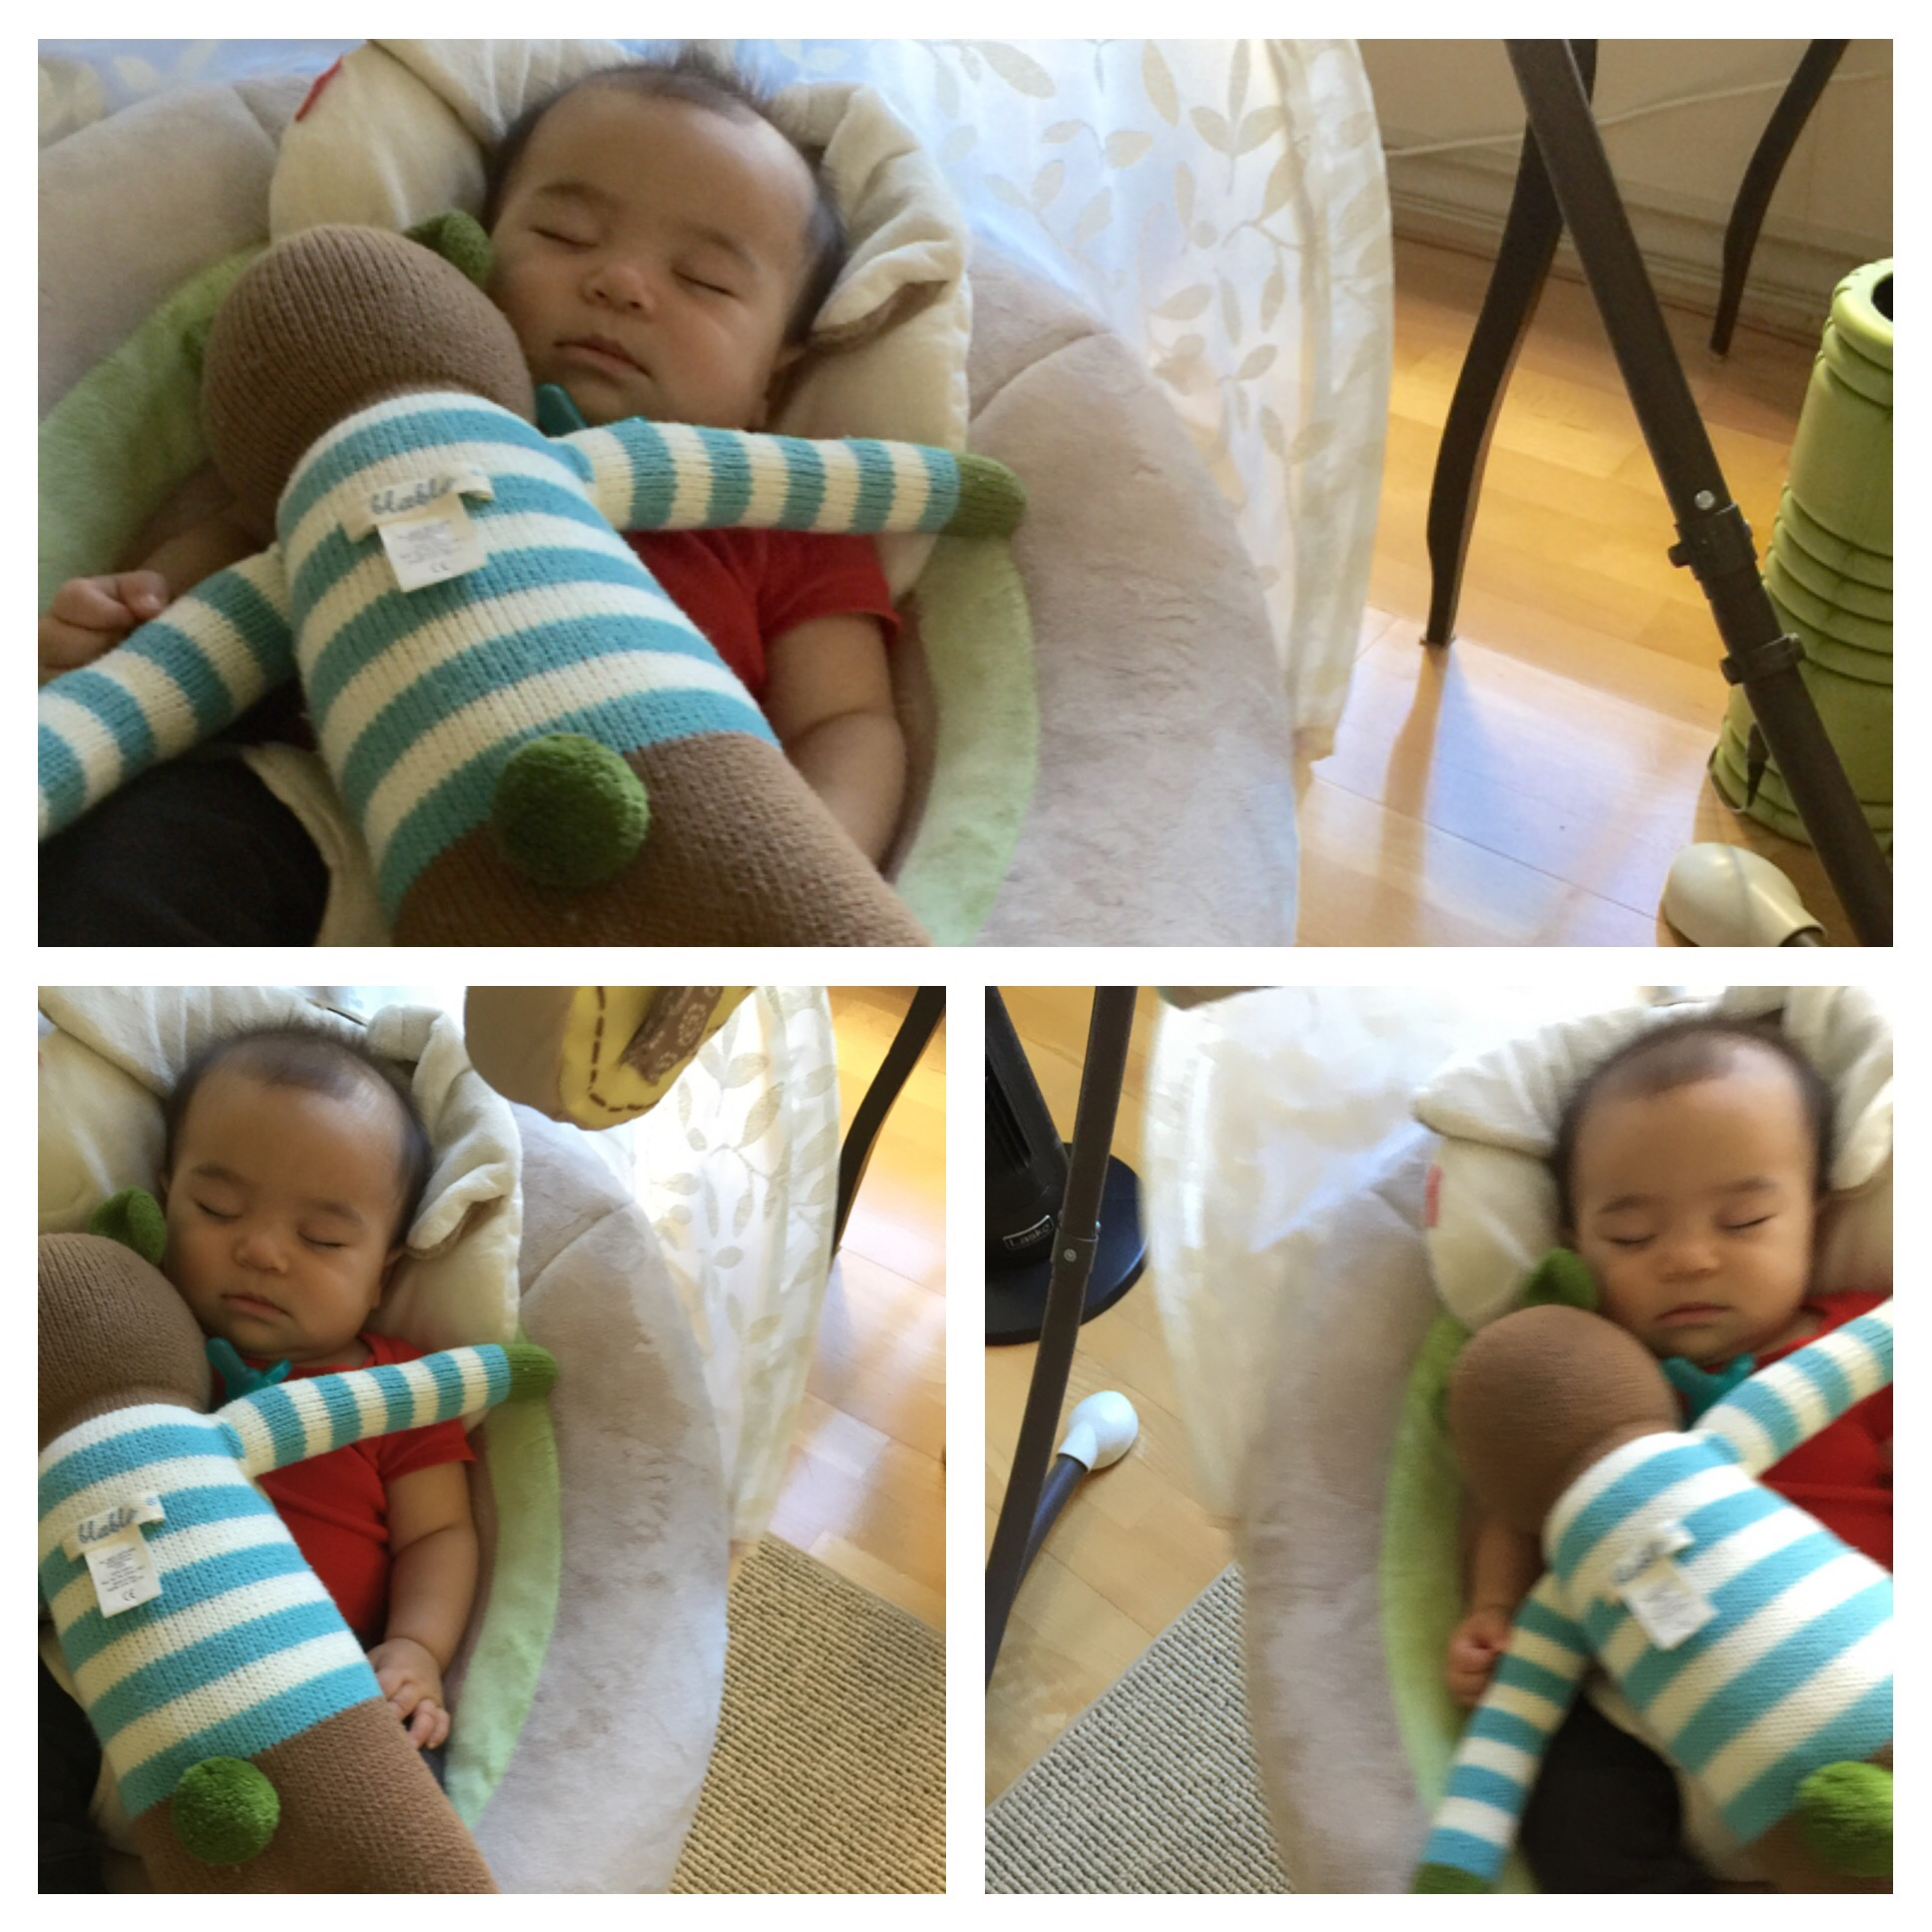 Baby on a swinger, sleeping